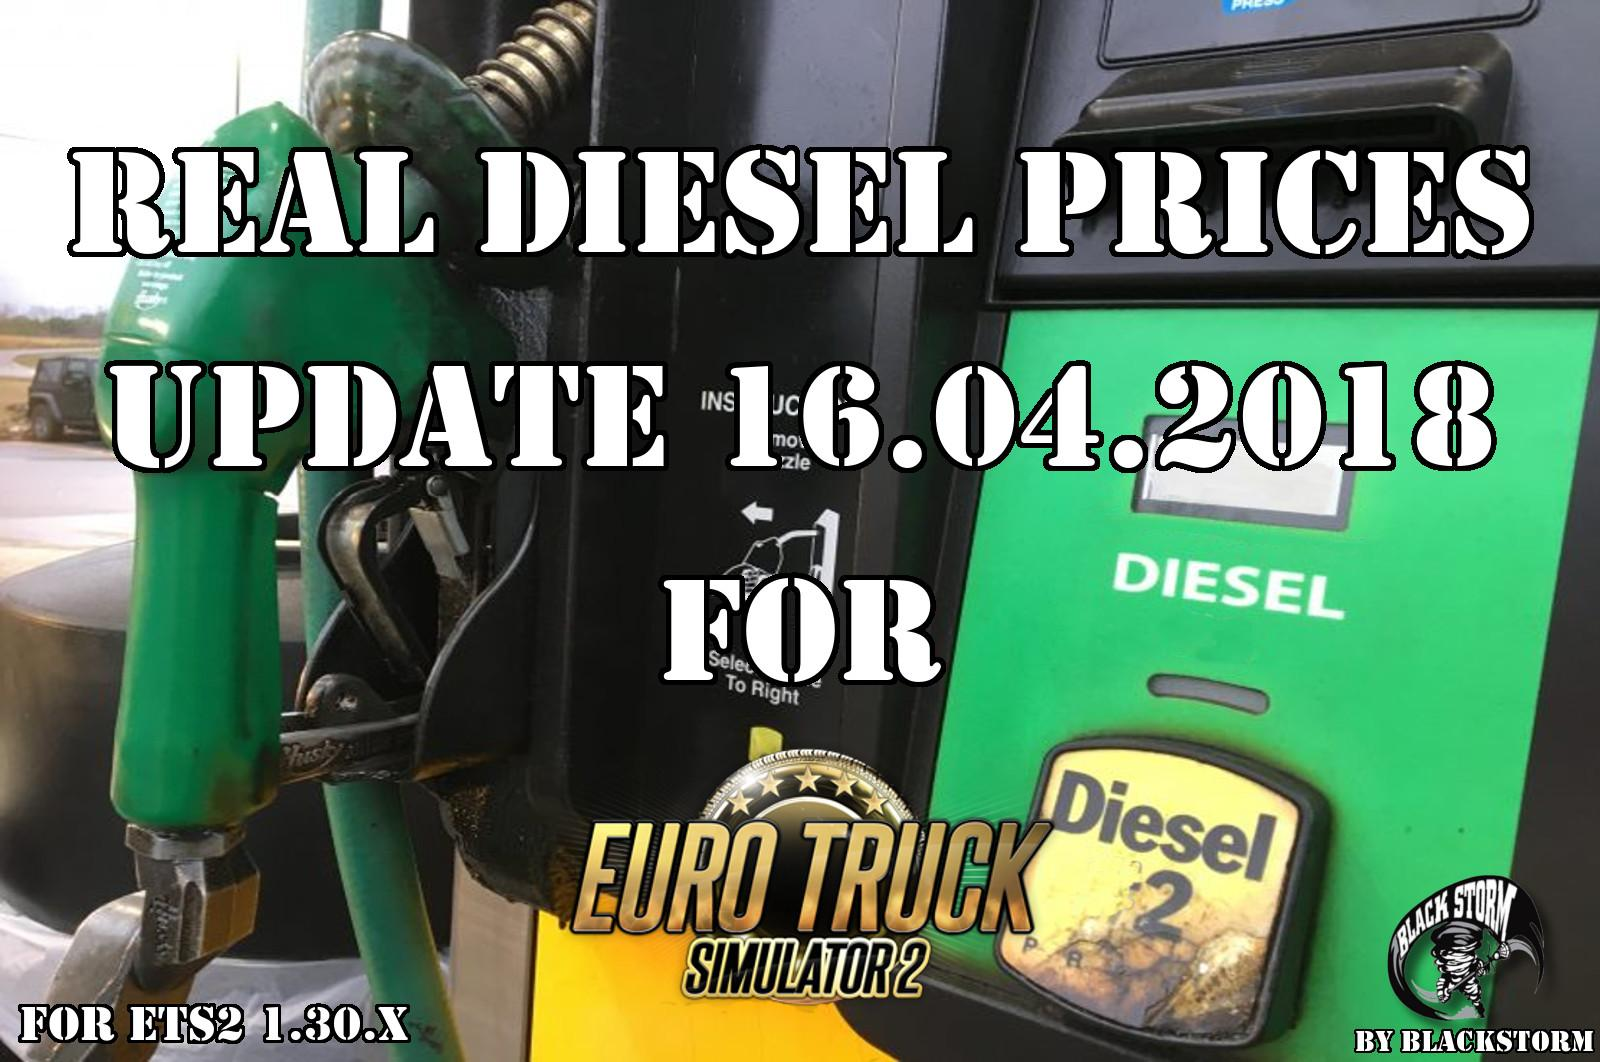 Real Diesel Prices for Euro Truck Simulator 2 map (updated 16/04/2018)